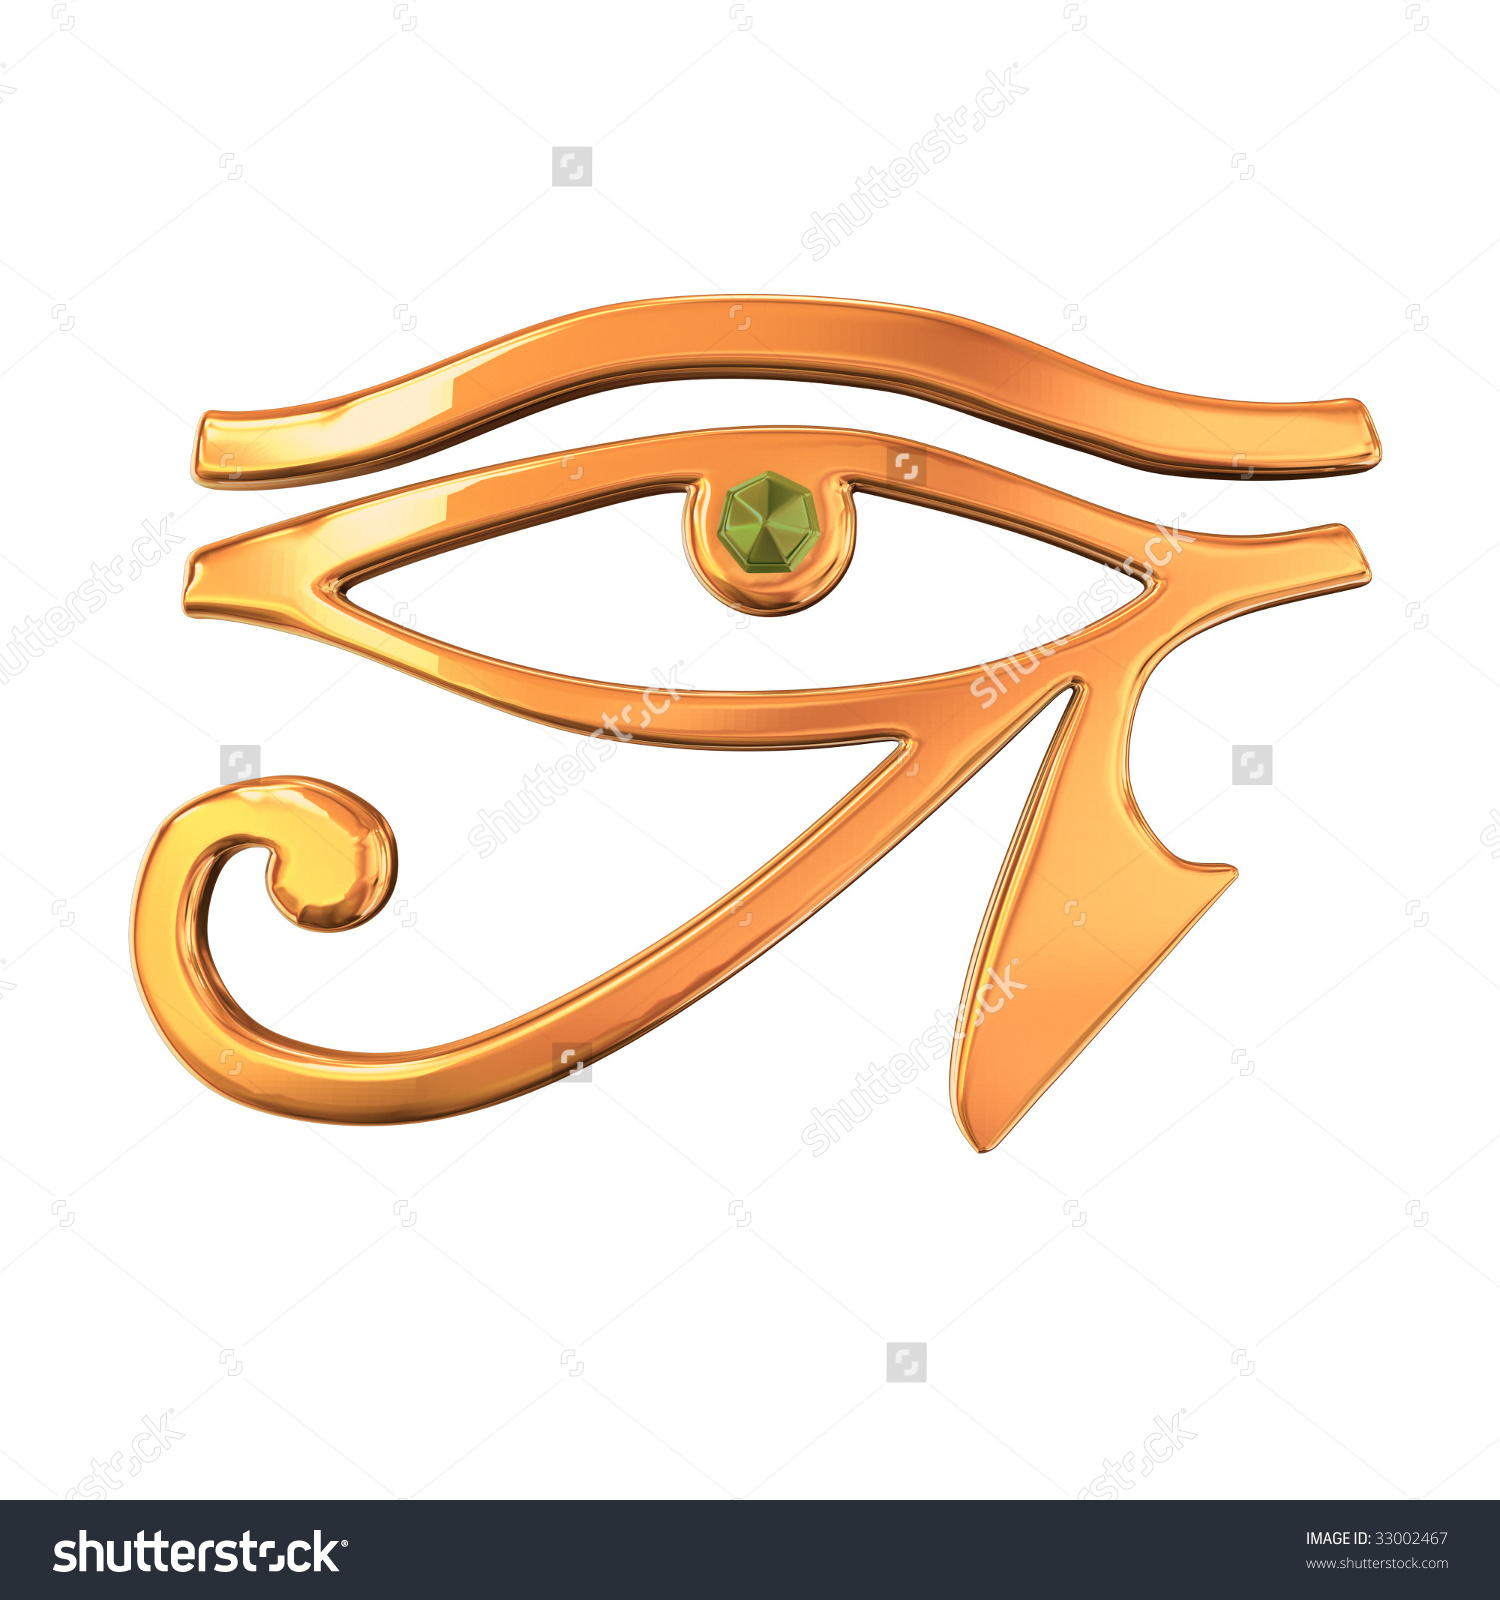 3d Model Golden Eye Horus Stock Photo 33002467.